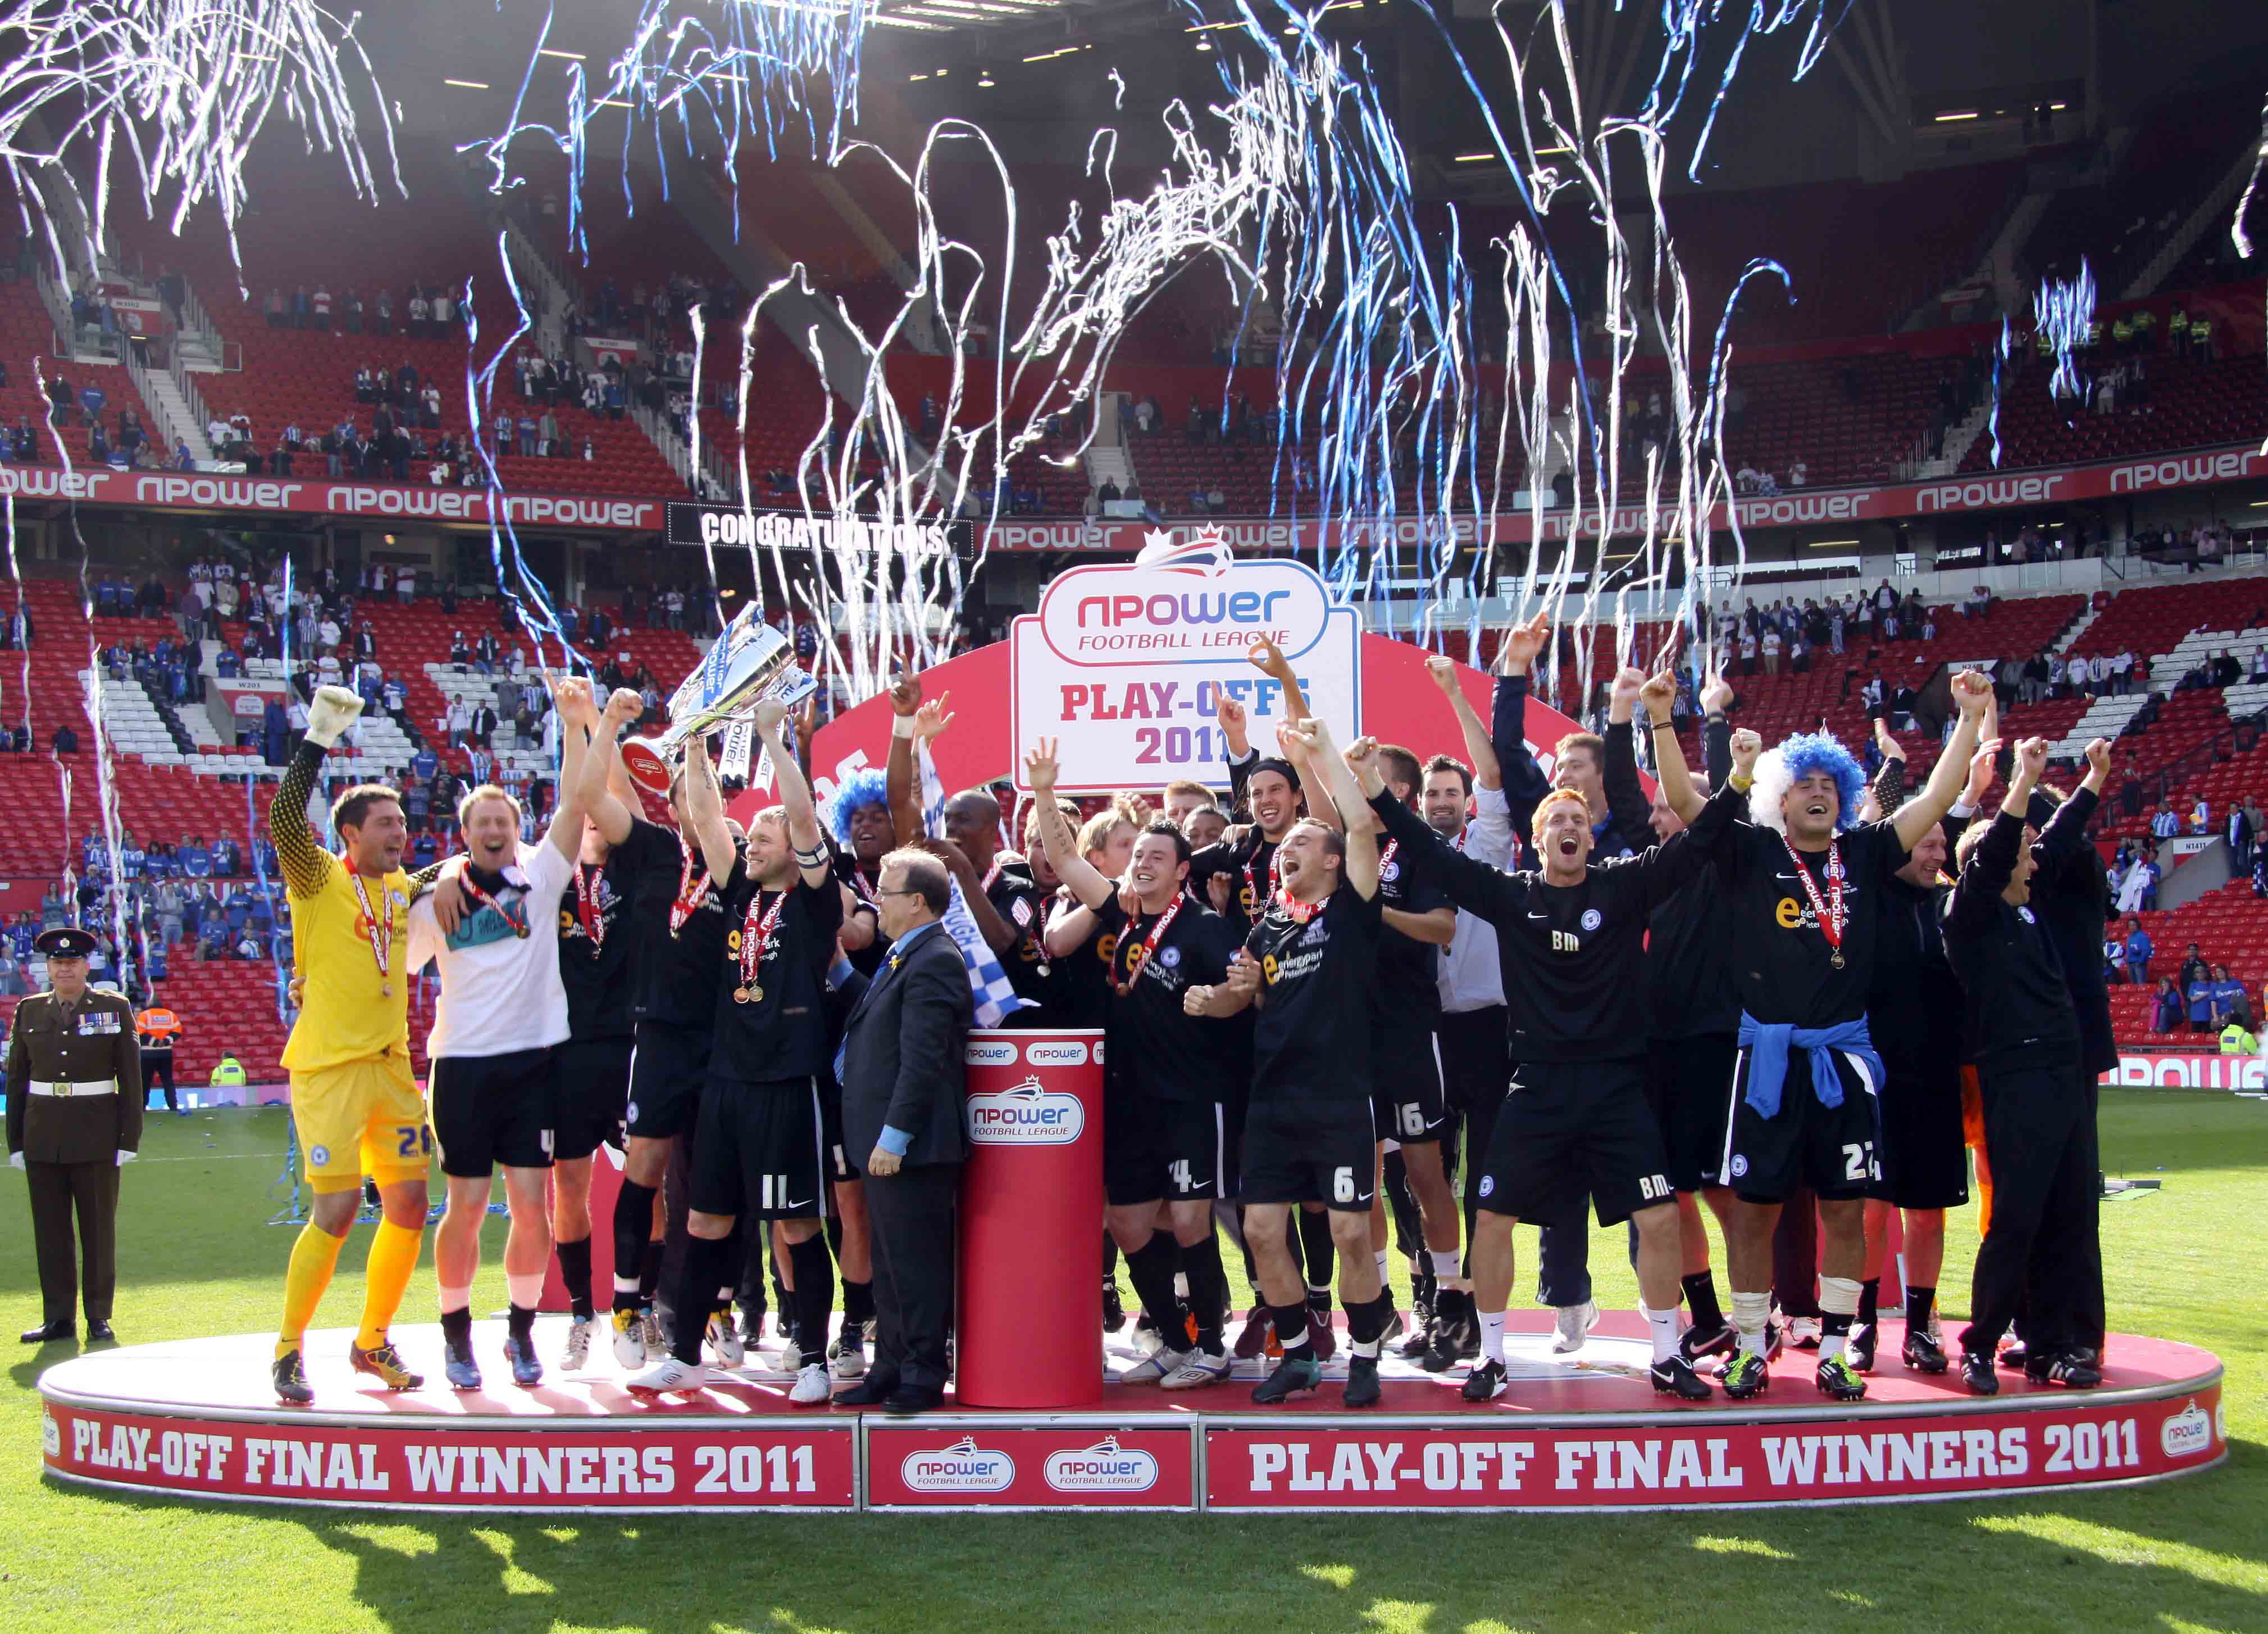 Posh celebrate winning promotion in the League One Play-Offs